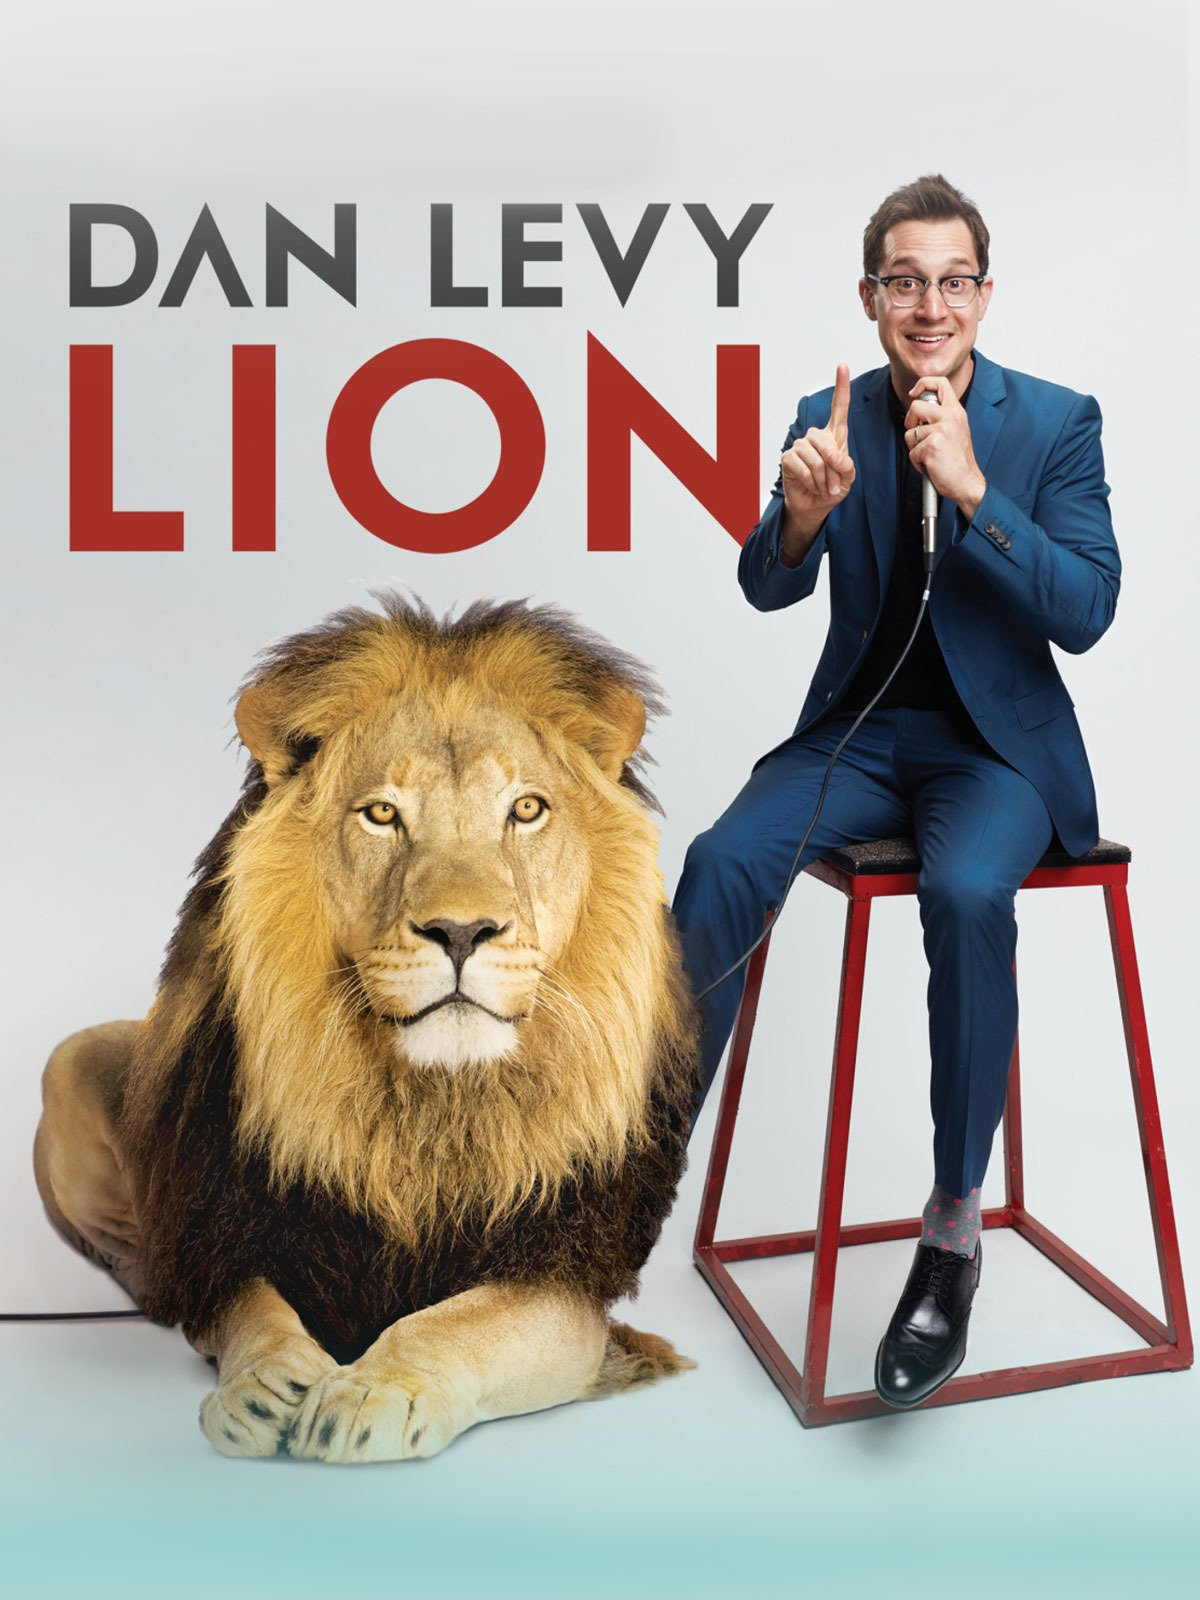 Dan Levy: Lion on Amazon Prime Instant Video UK